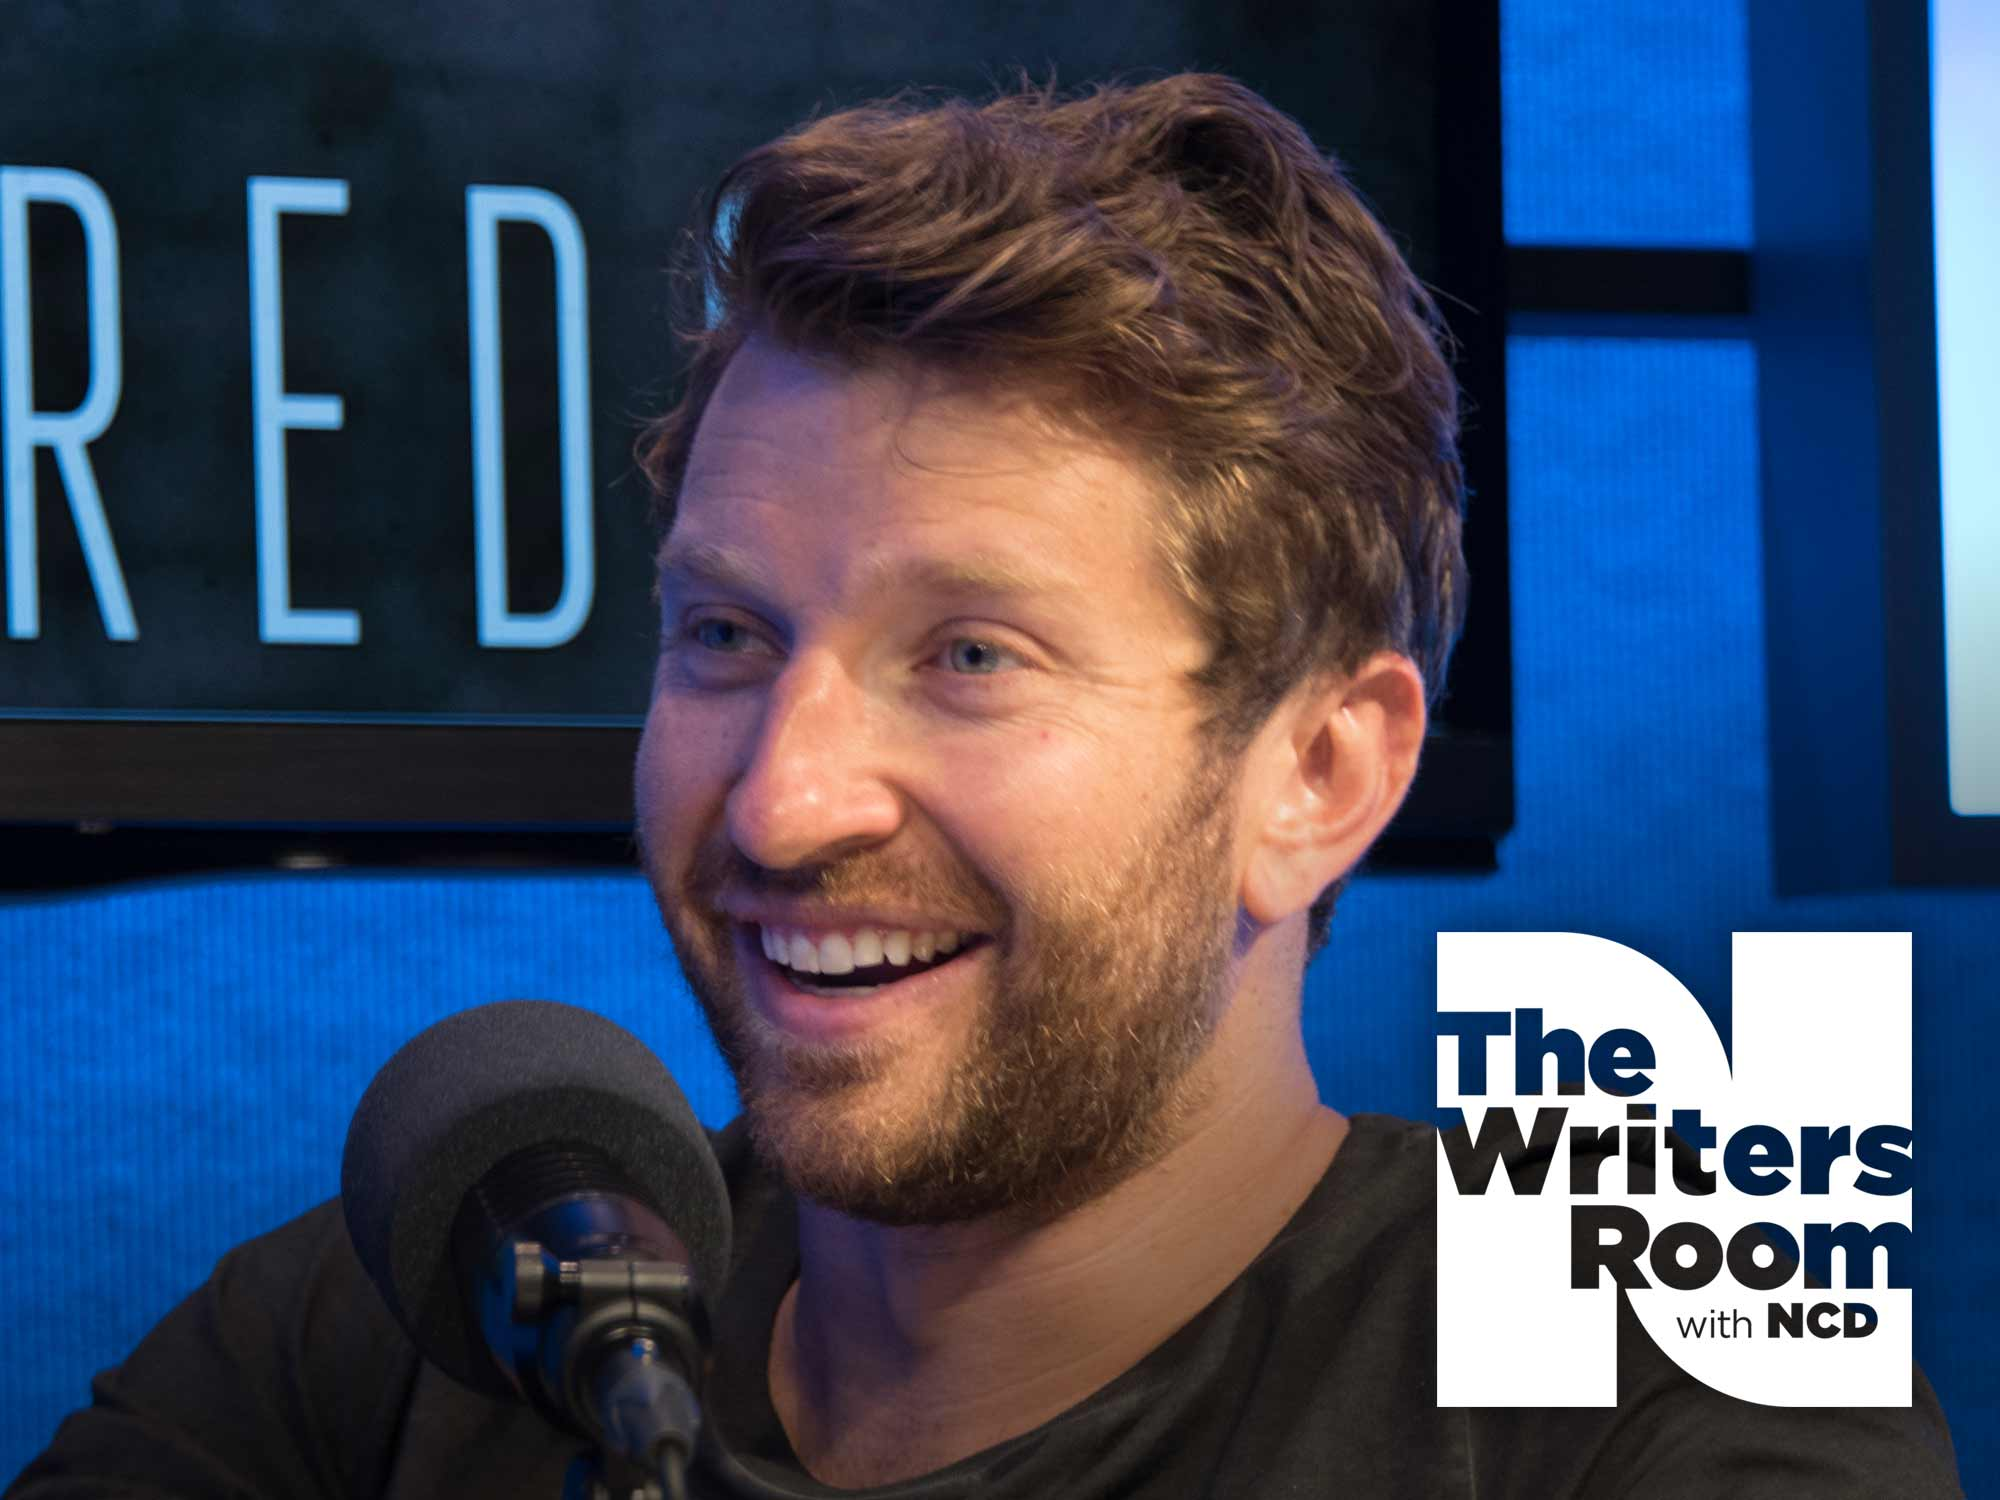 Brett Eldredge Talks Writing Personal Songs, Singing From His Heart, Coming Into His Own, New Self-Titled Album & More